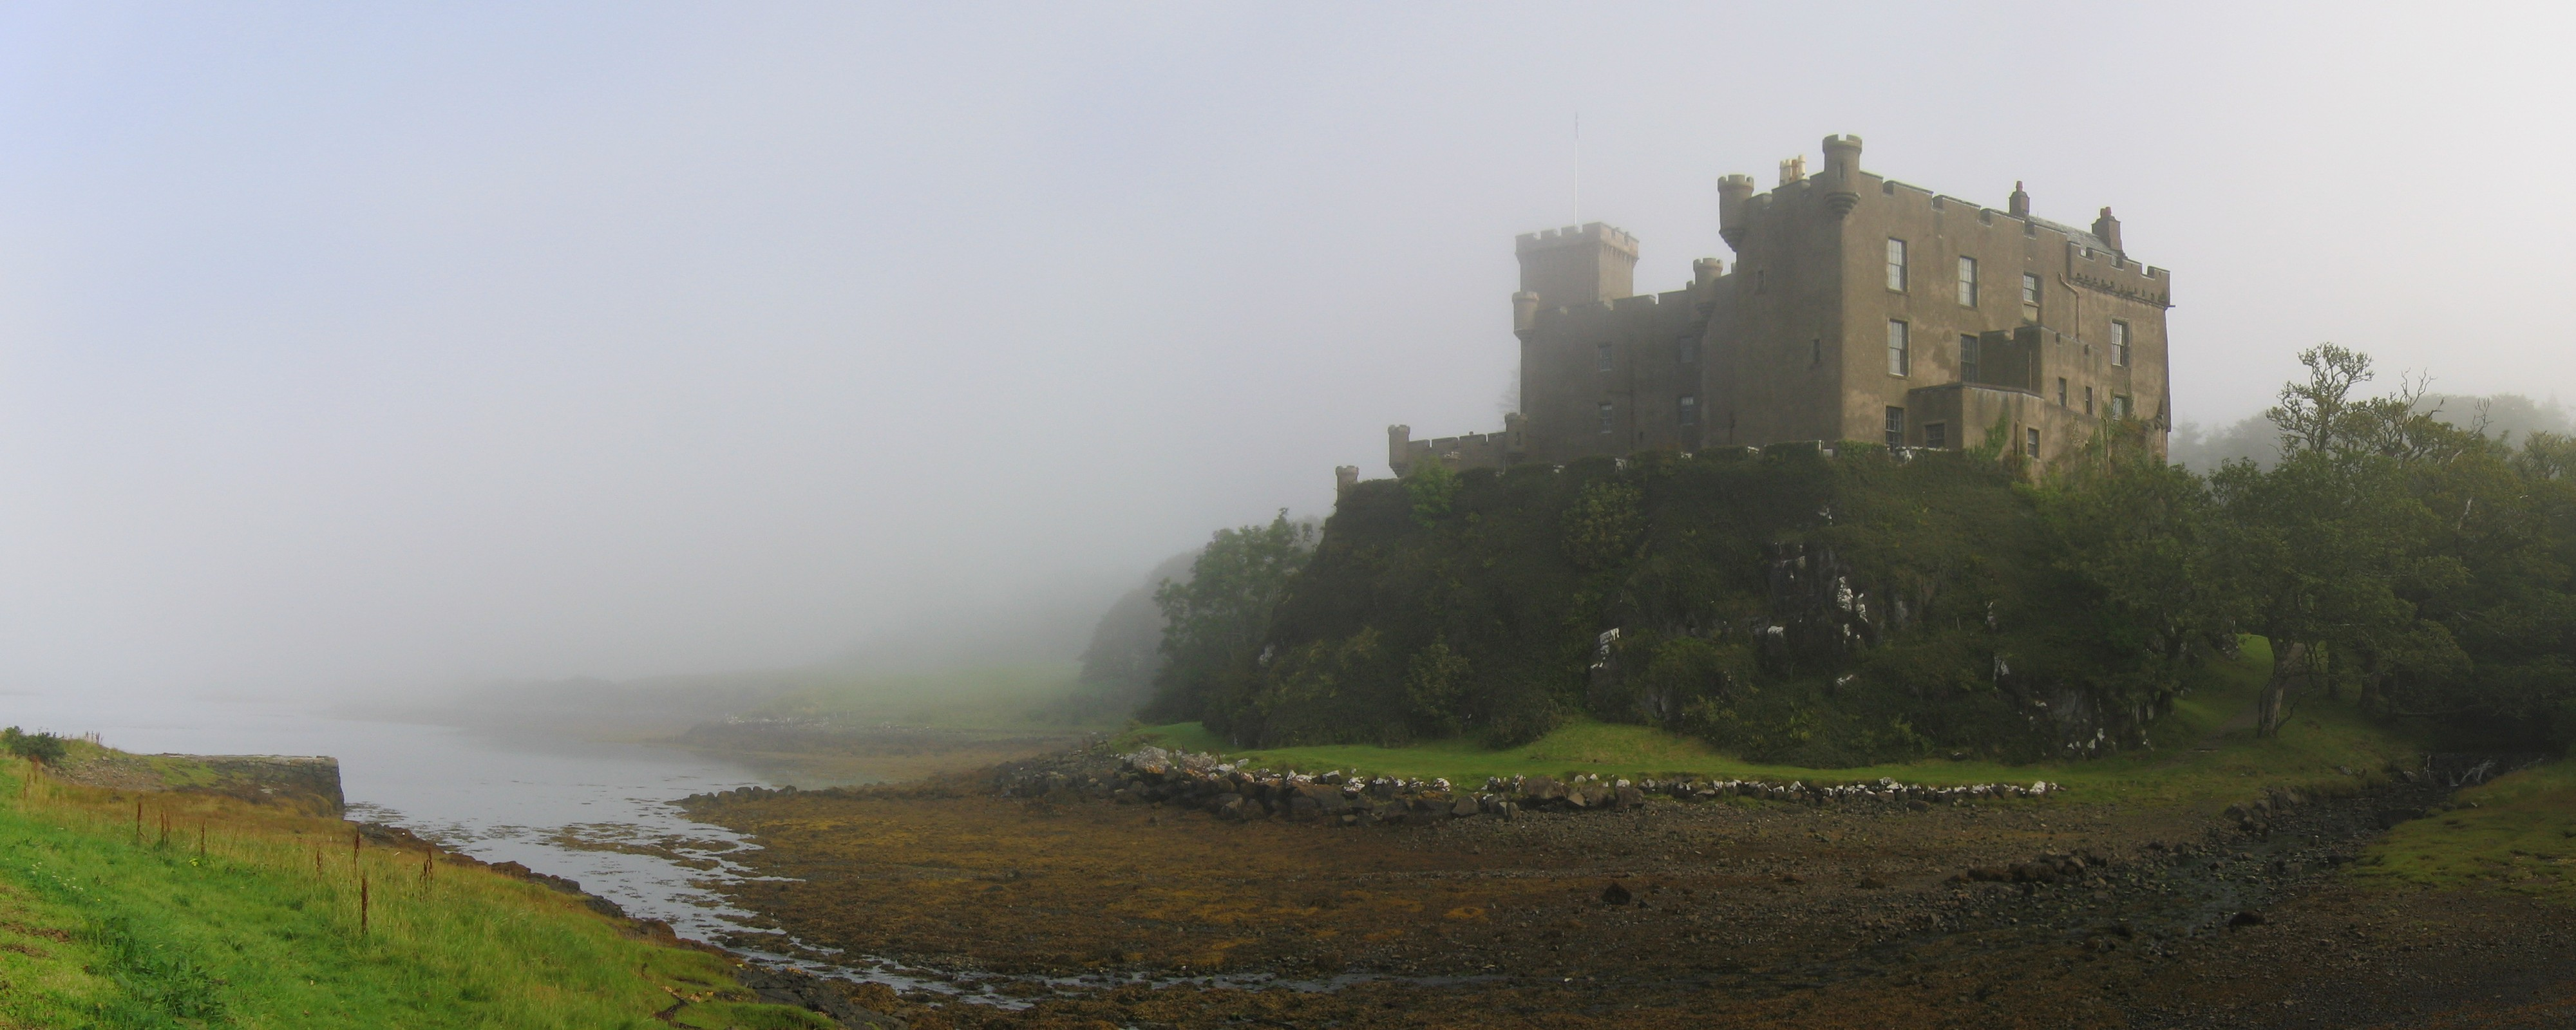 photo of dunvegan castle - photo #38